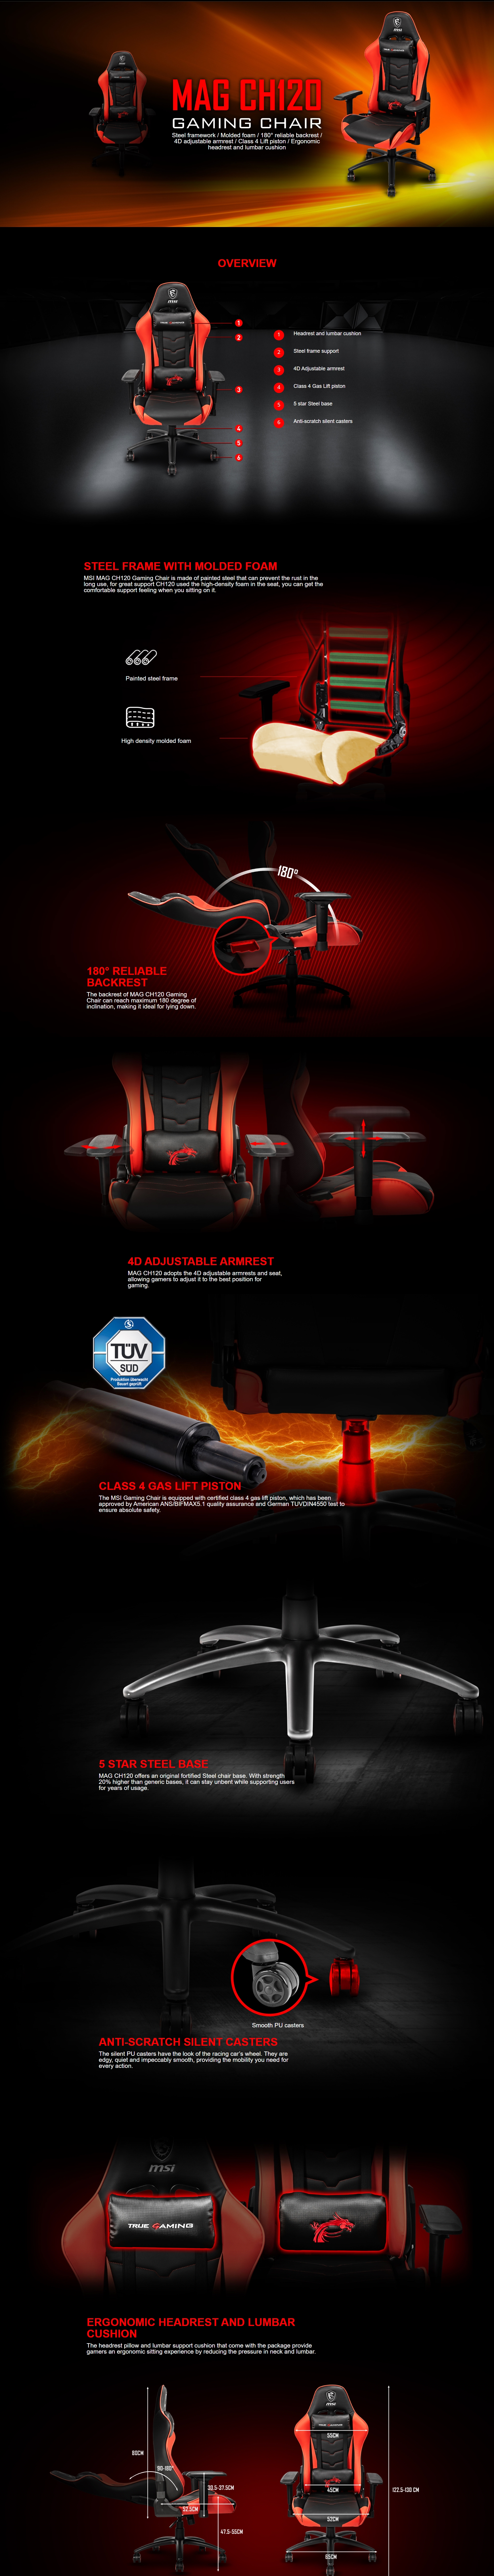 A large marketing image providing additional information about the product MSI MAG CH120X Gaming Chair - Additional alt info not provided